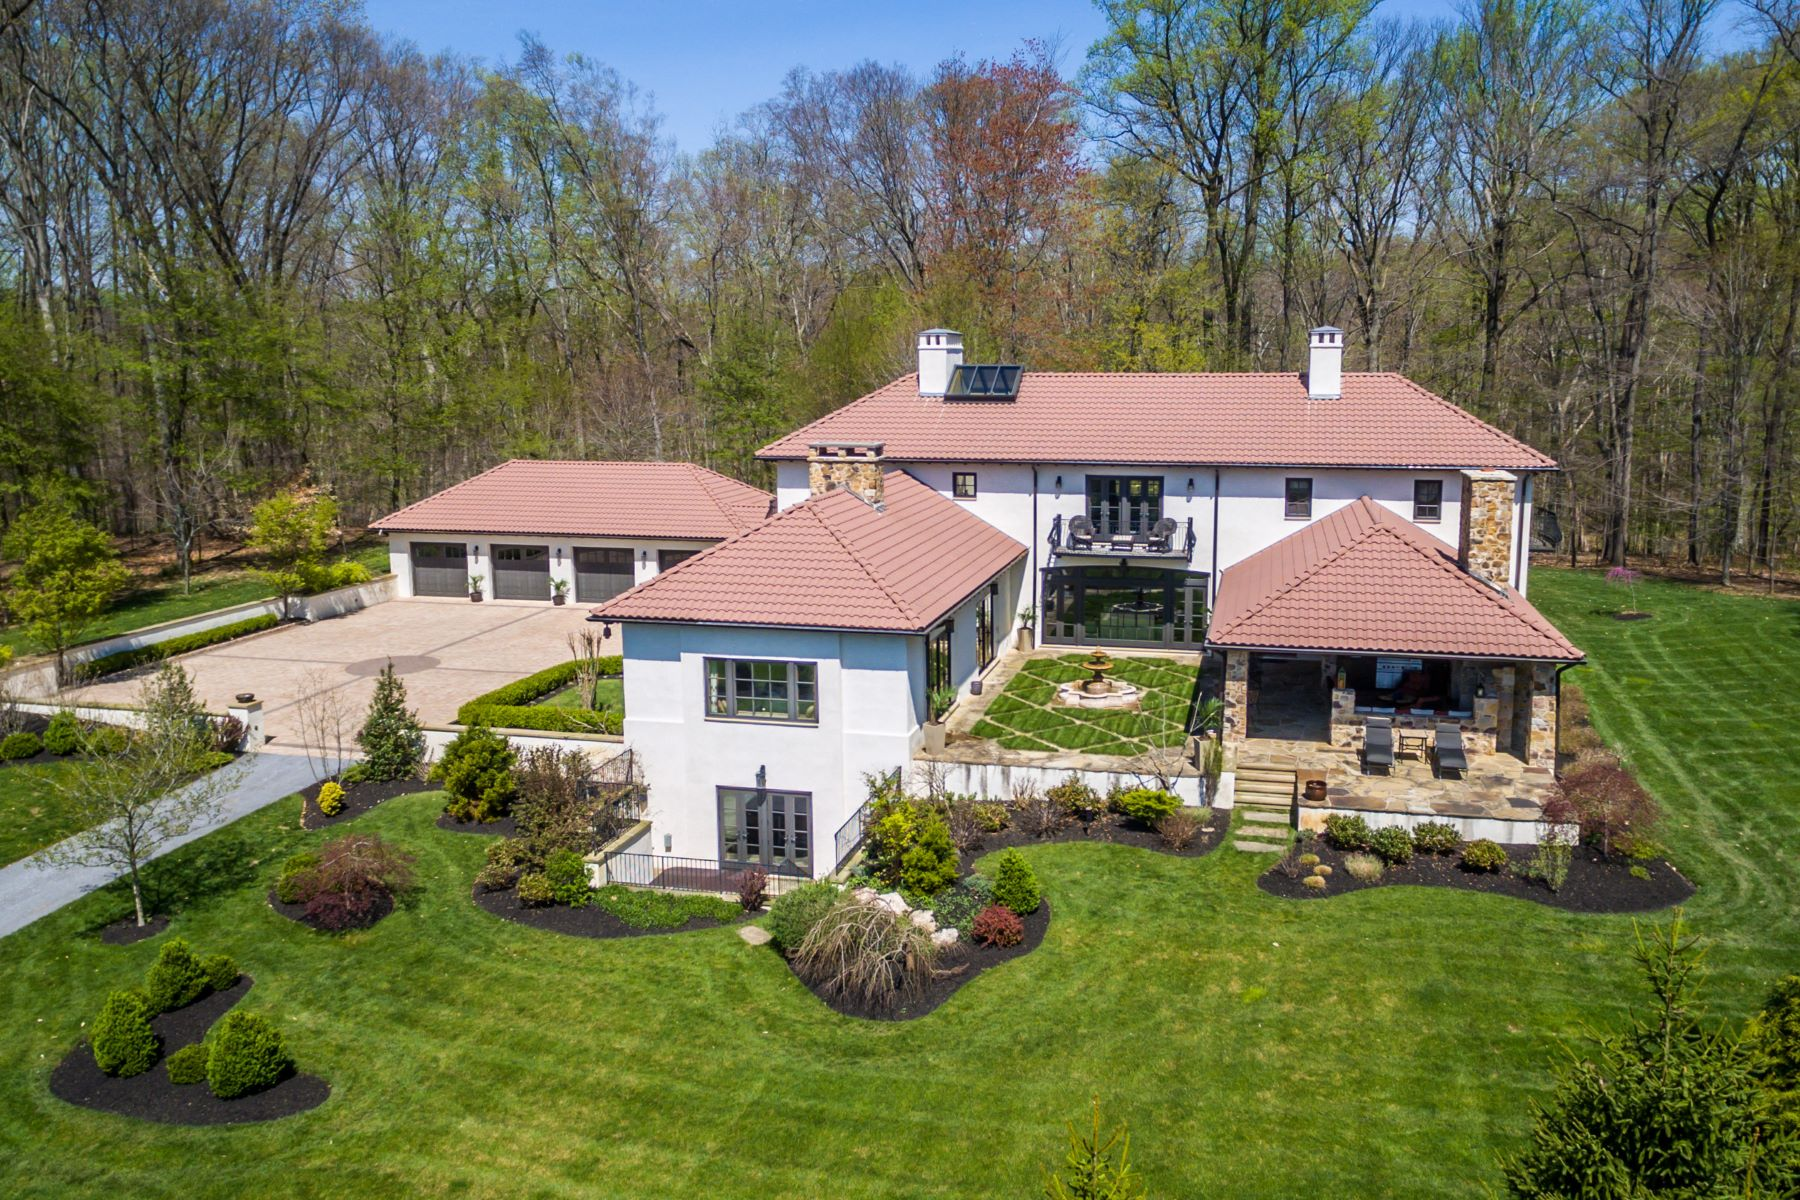 Single Family Home for Sale at 614 Coltsfoot Dr., West Chester, PA 19382 West Chester, Pennsylvania 19382 United States